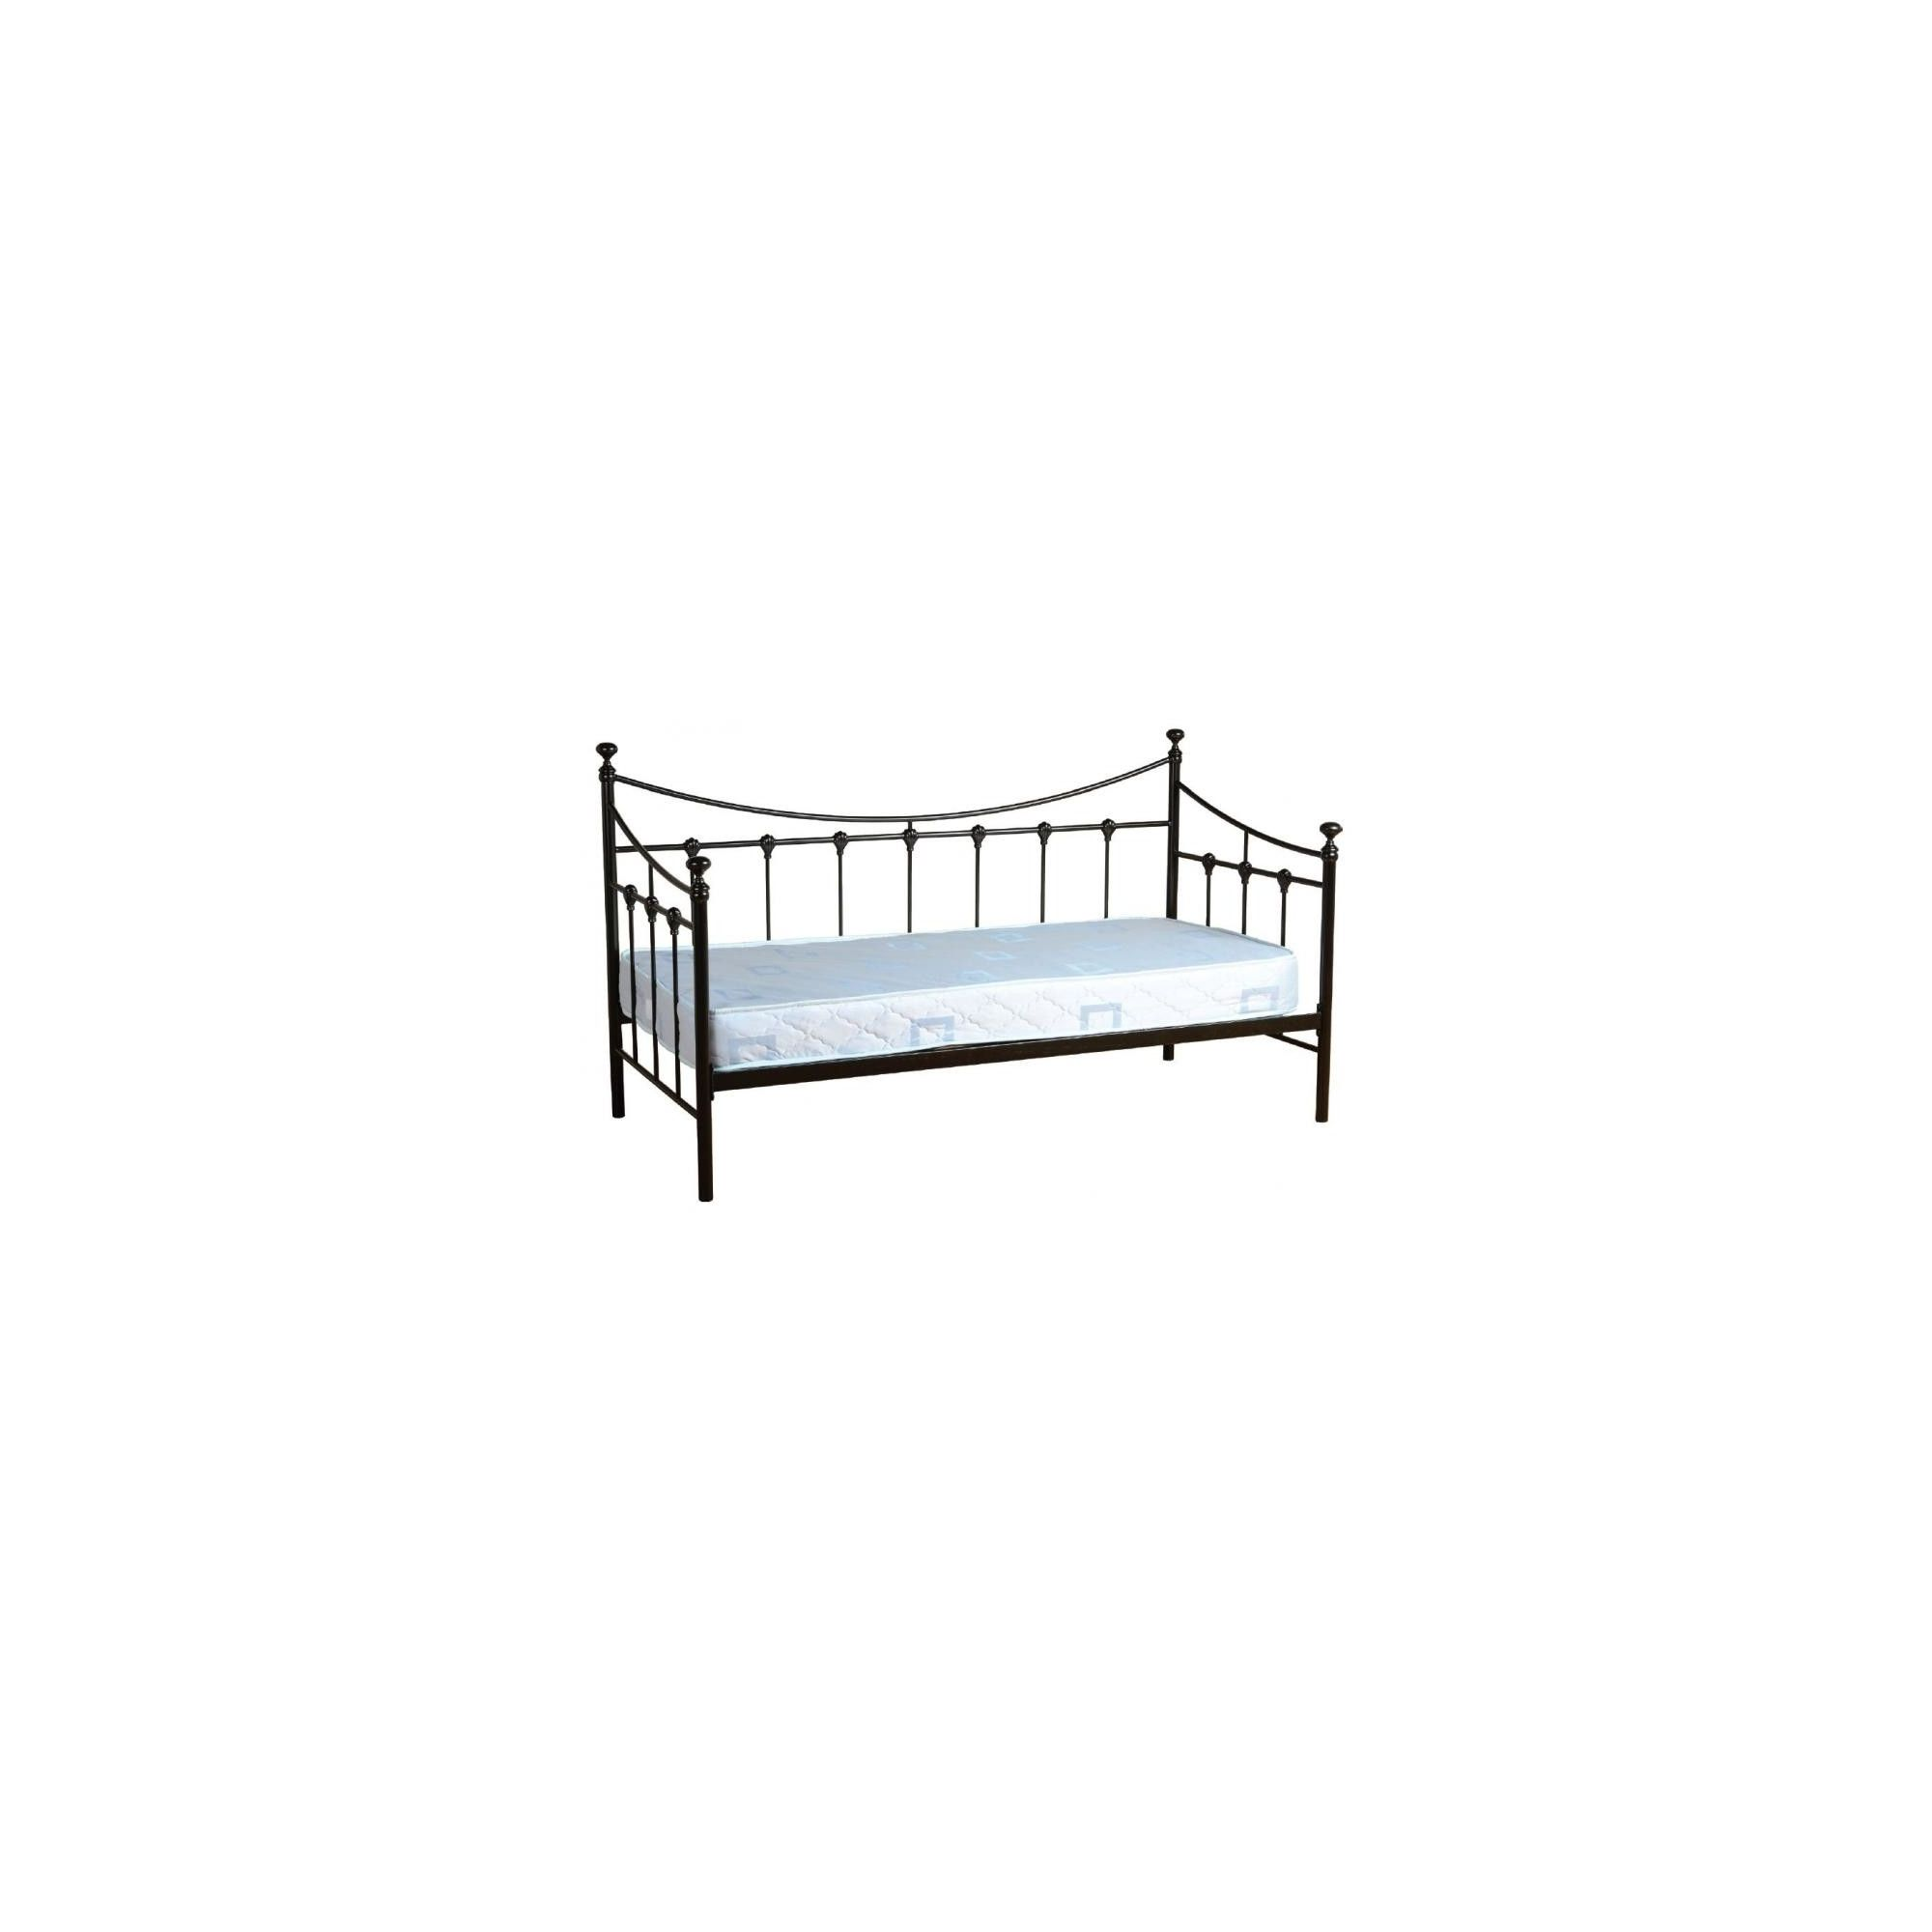 Home Essence Torino Day Bed Frame - Black